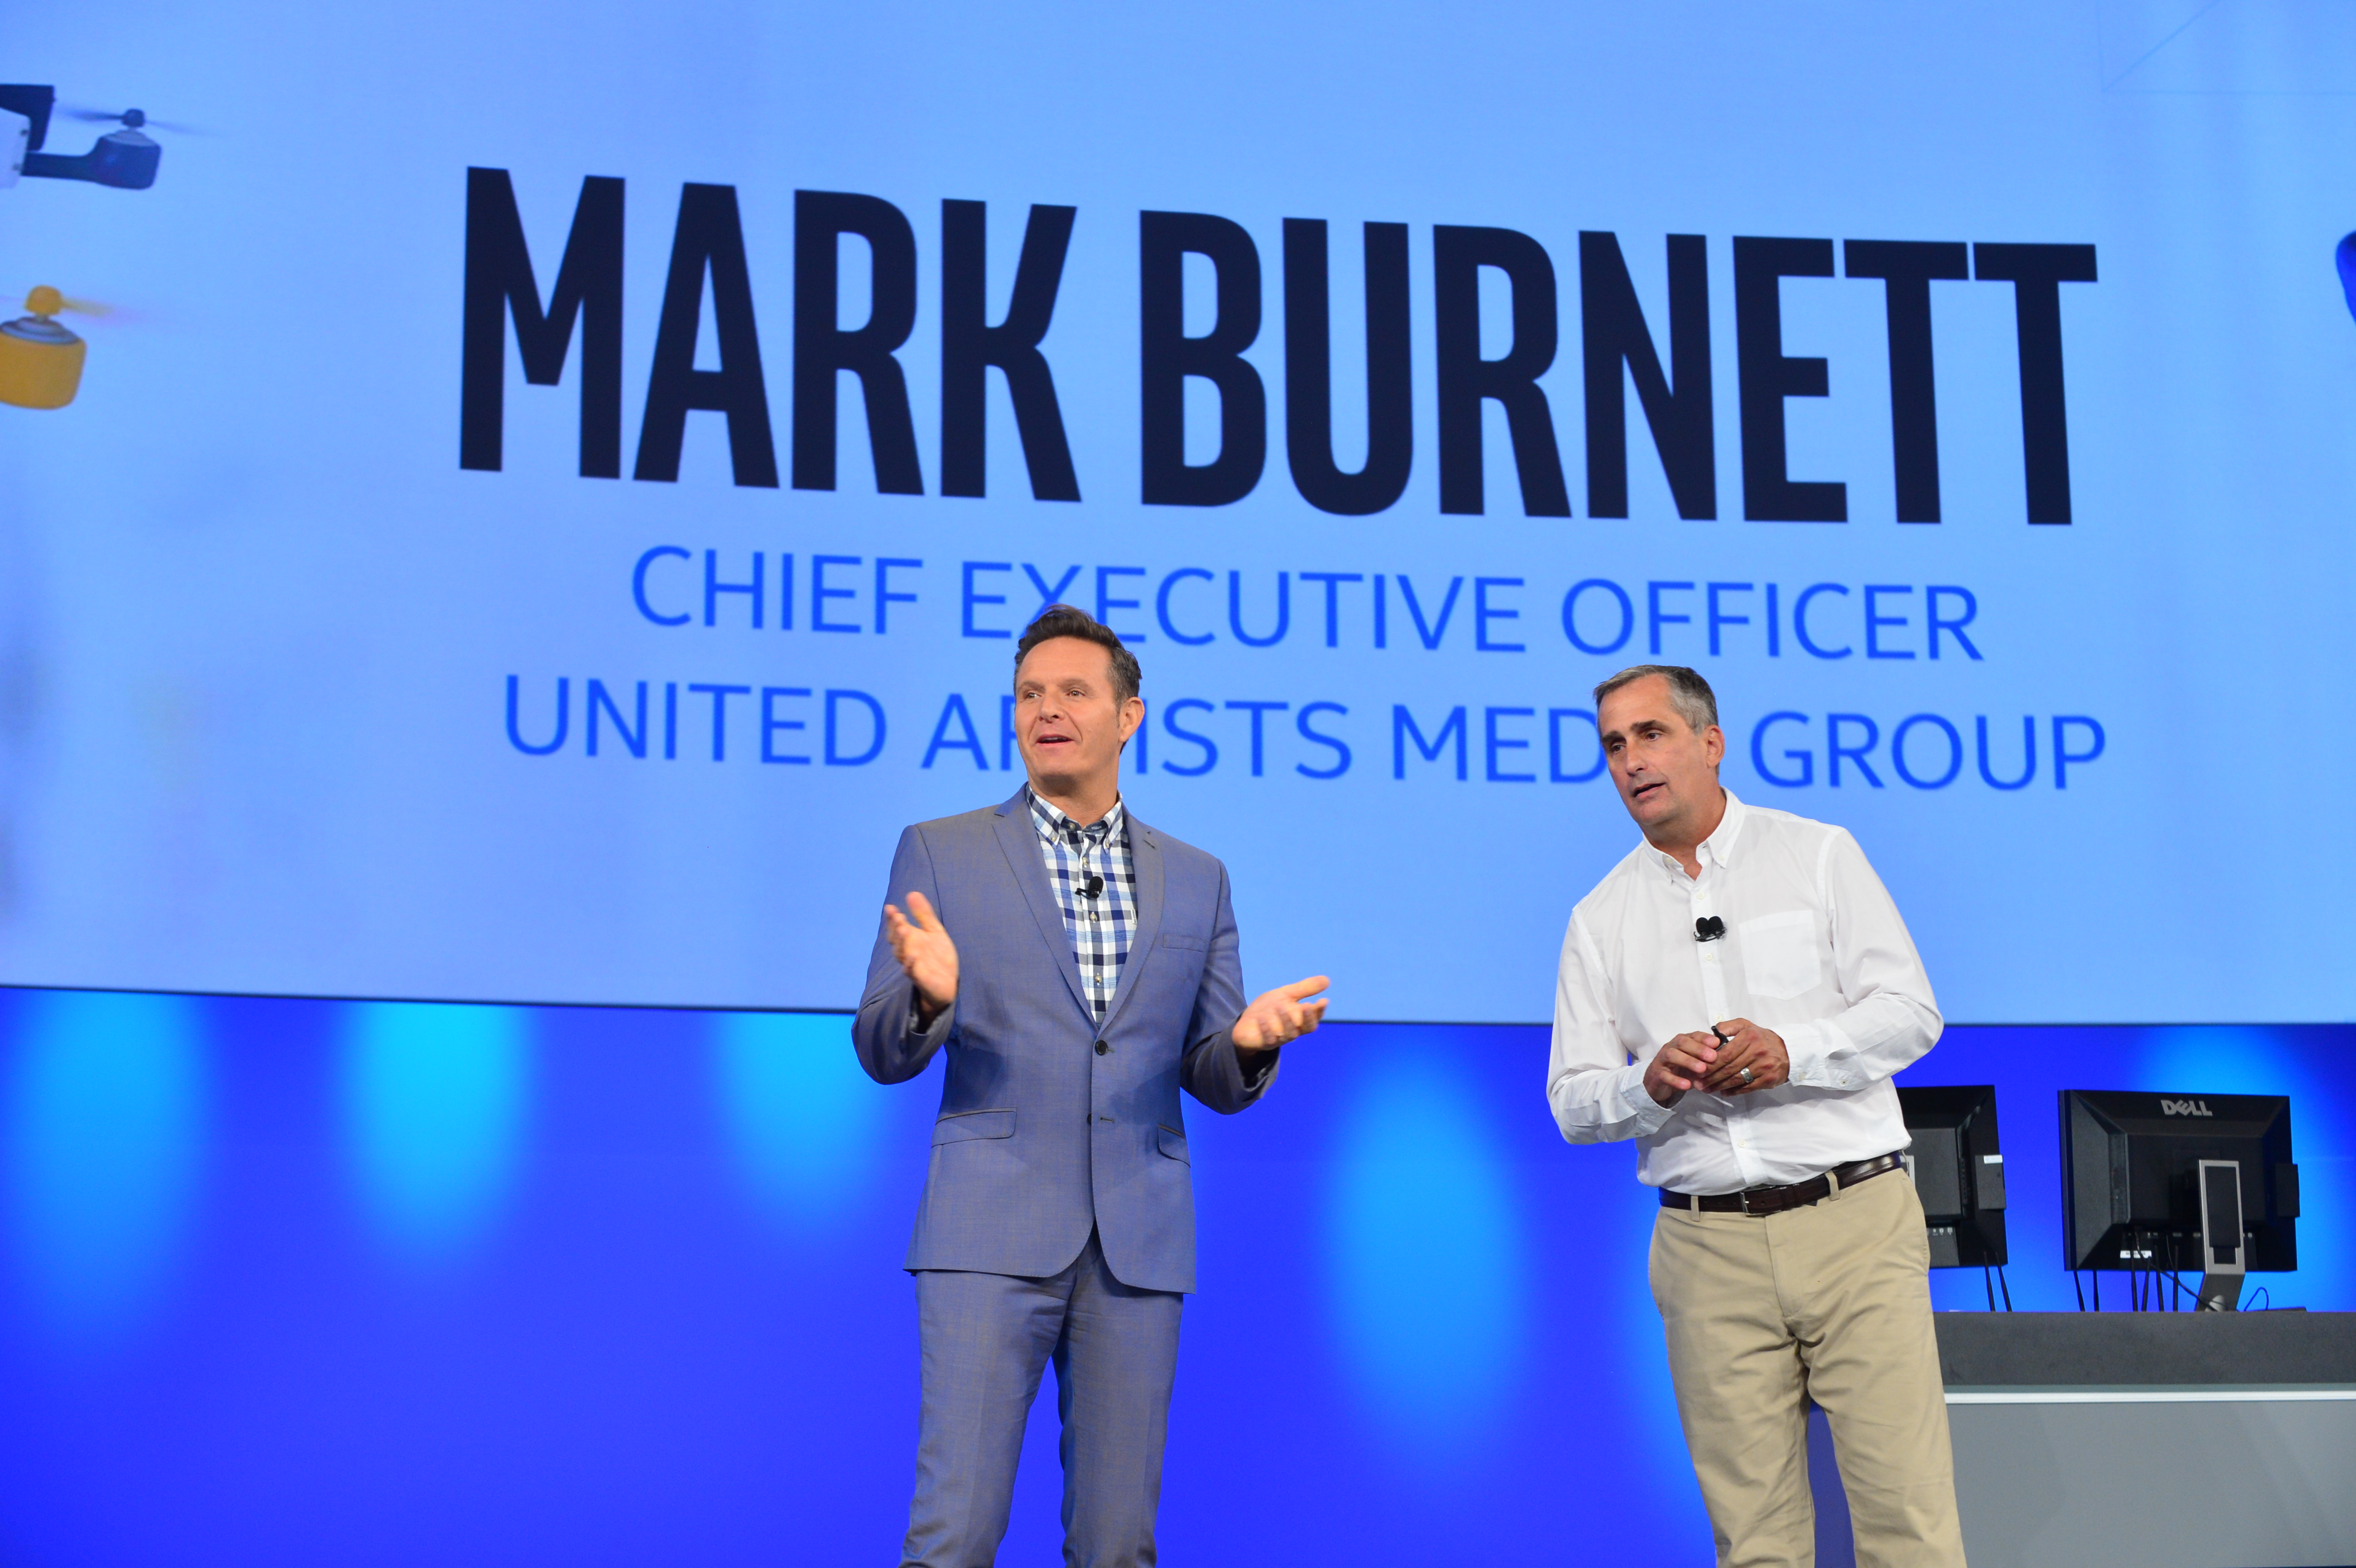 United Artists Media Group CEO Mark Burnett and Intel CEO Brian Krzanich, announced 'America's Greatest Makers,' a new reality competition.